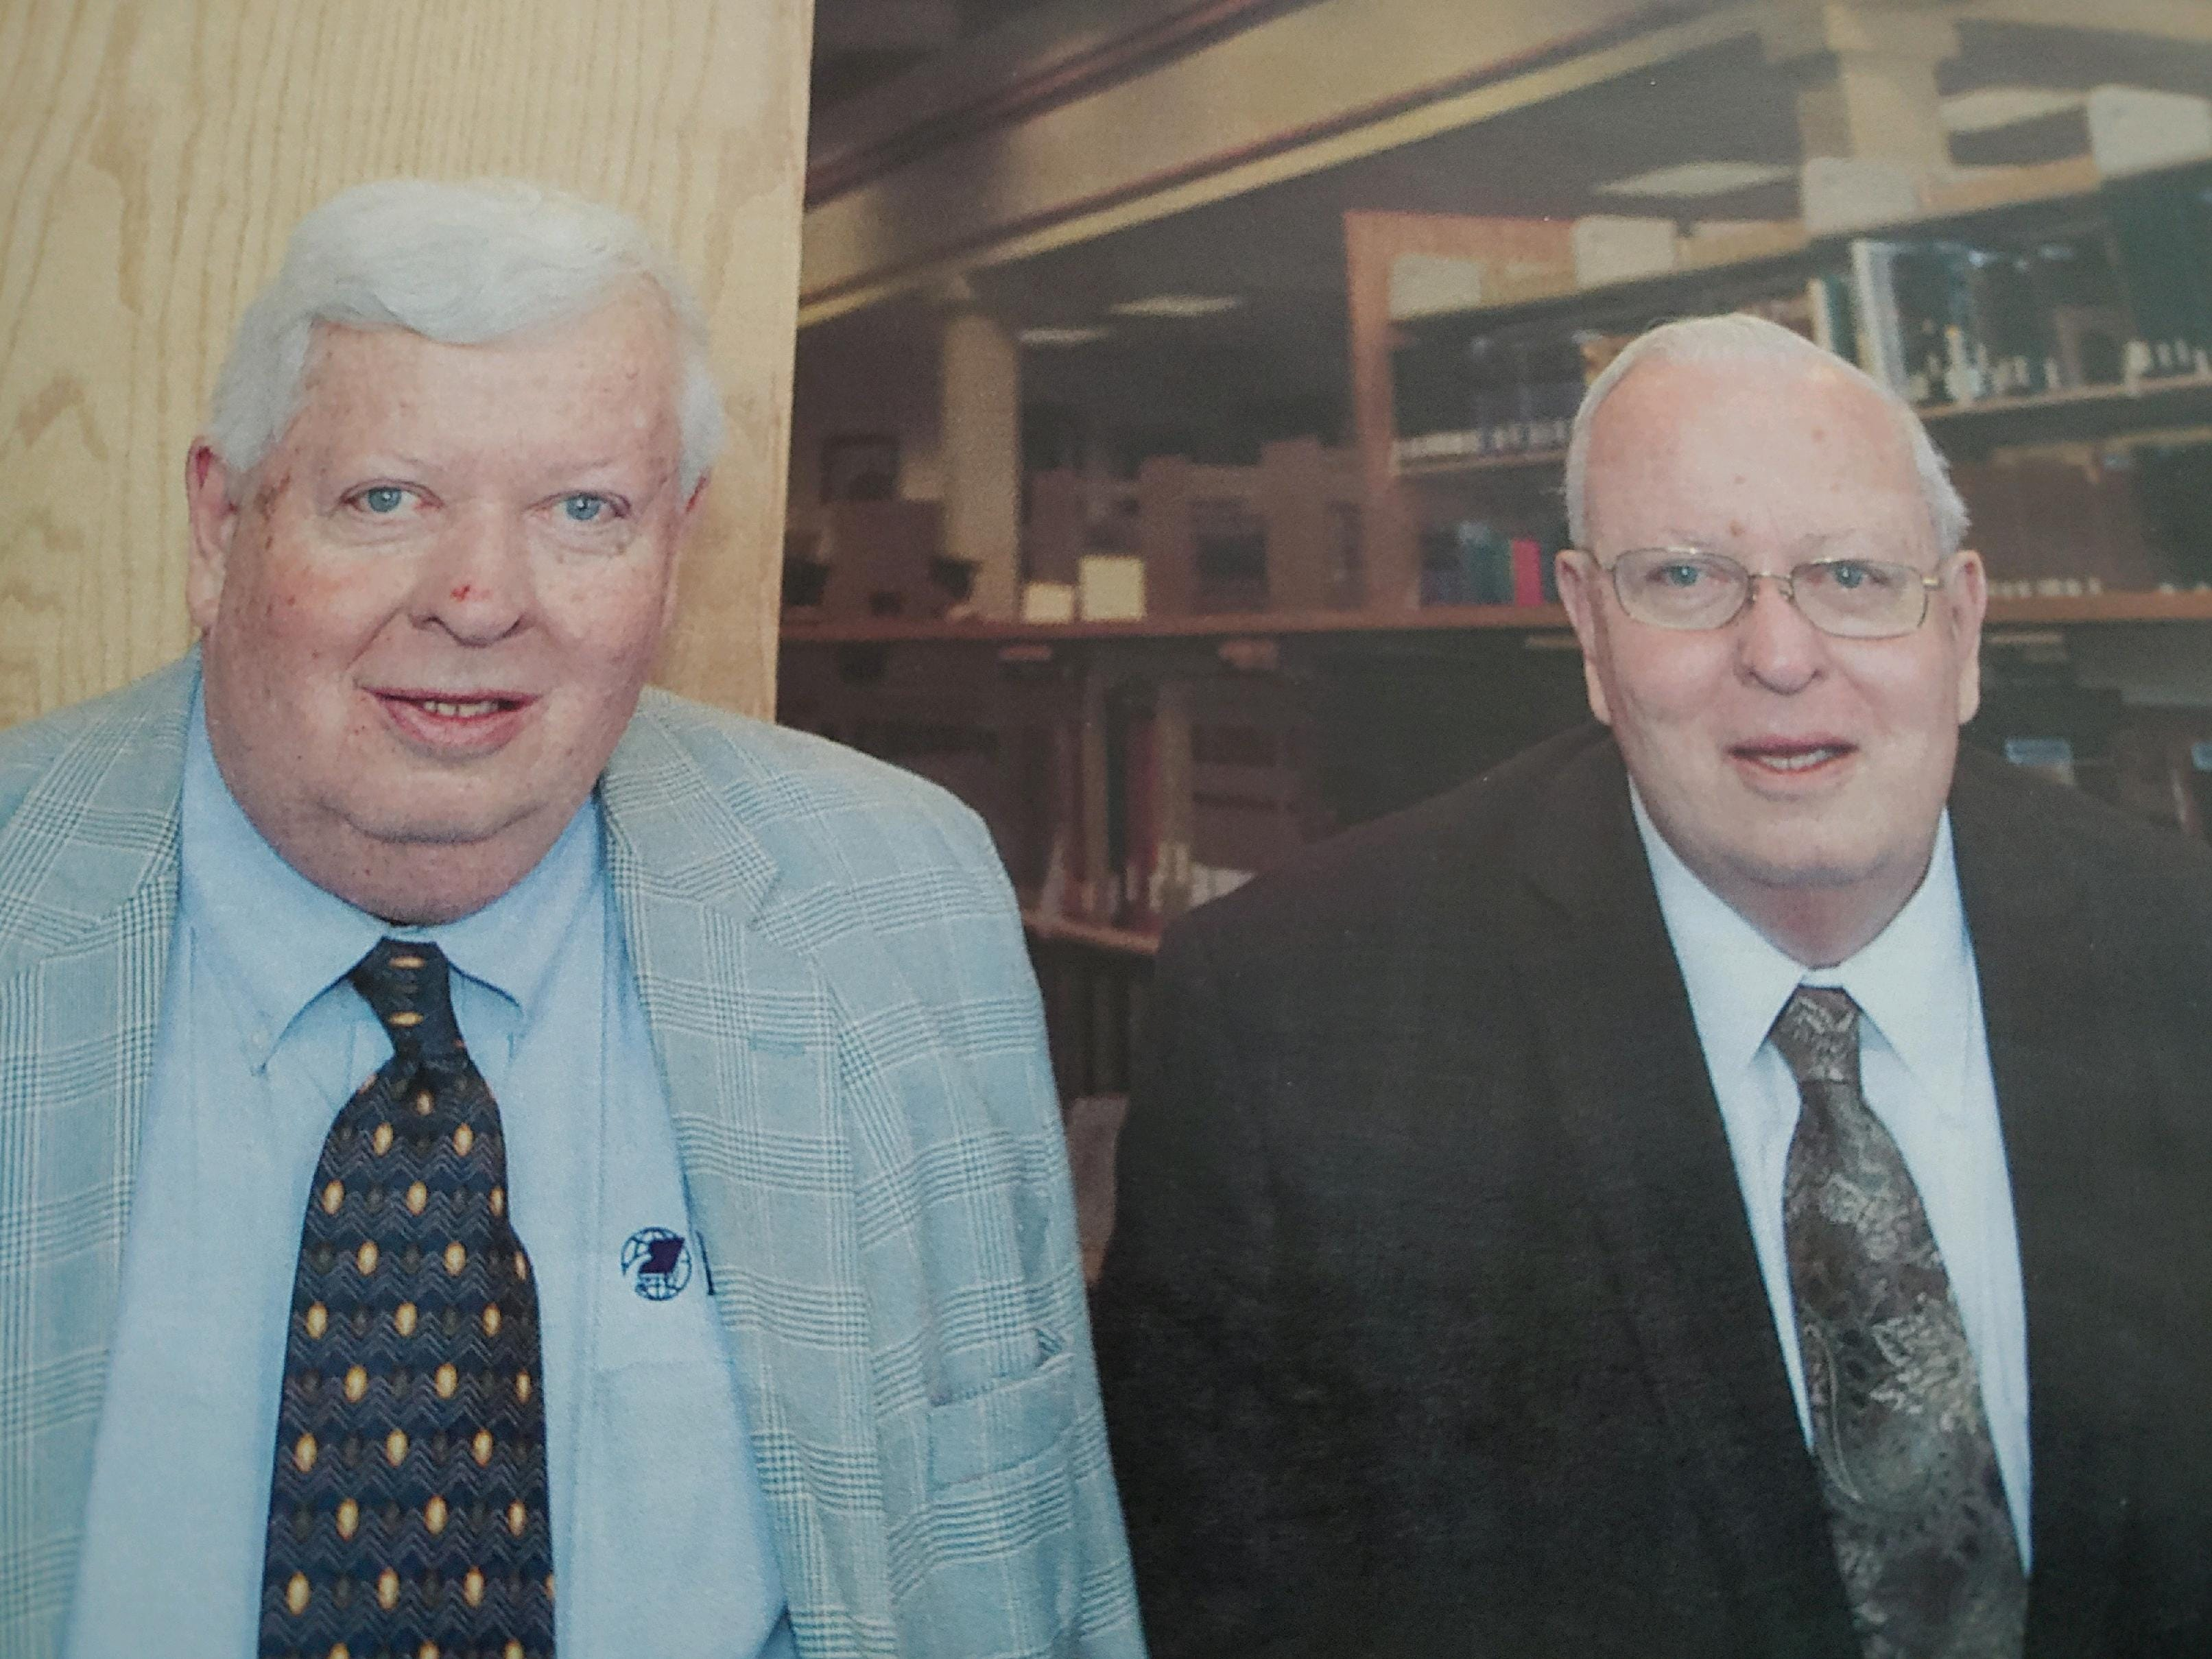 Myron James Houghton (right), 78, died July 14, 2020 due to complications from COVID-19.